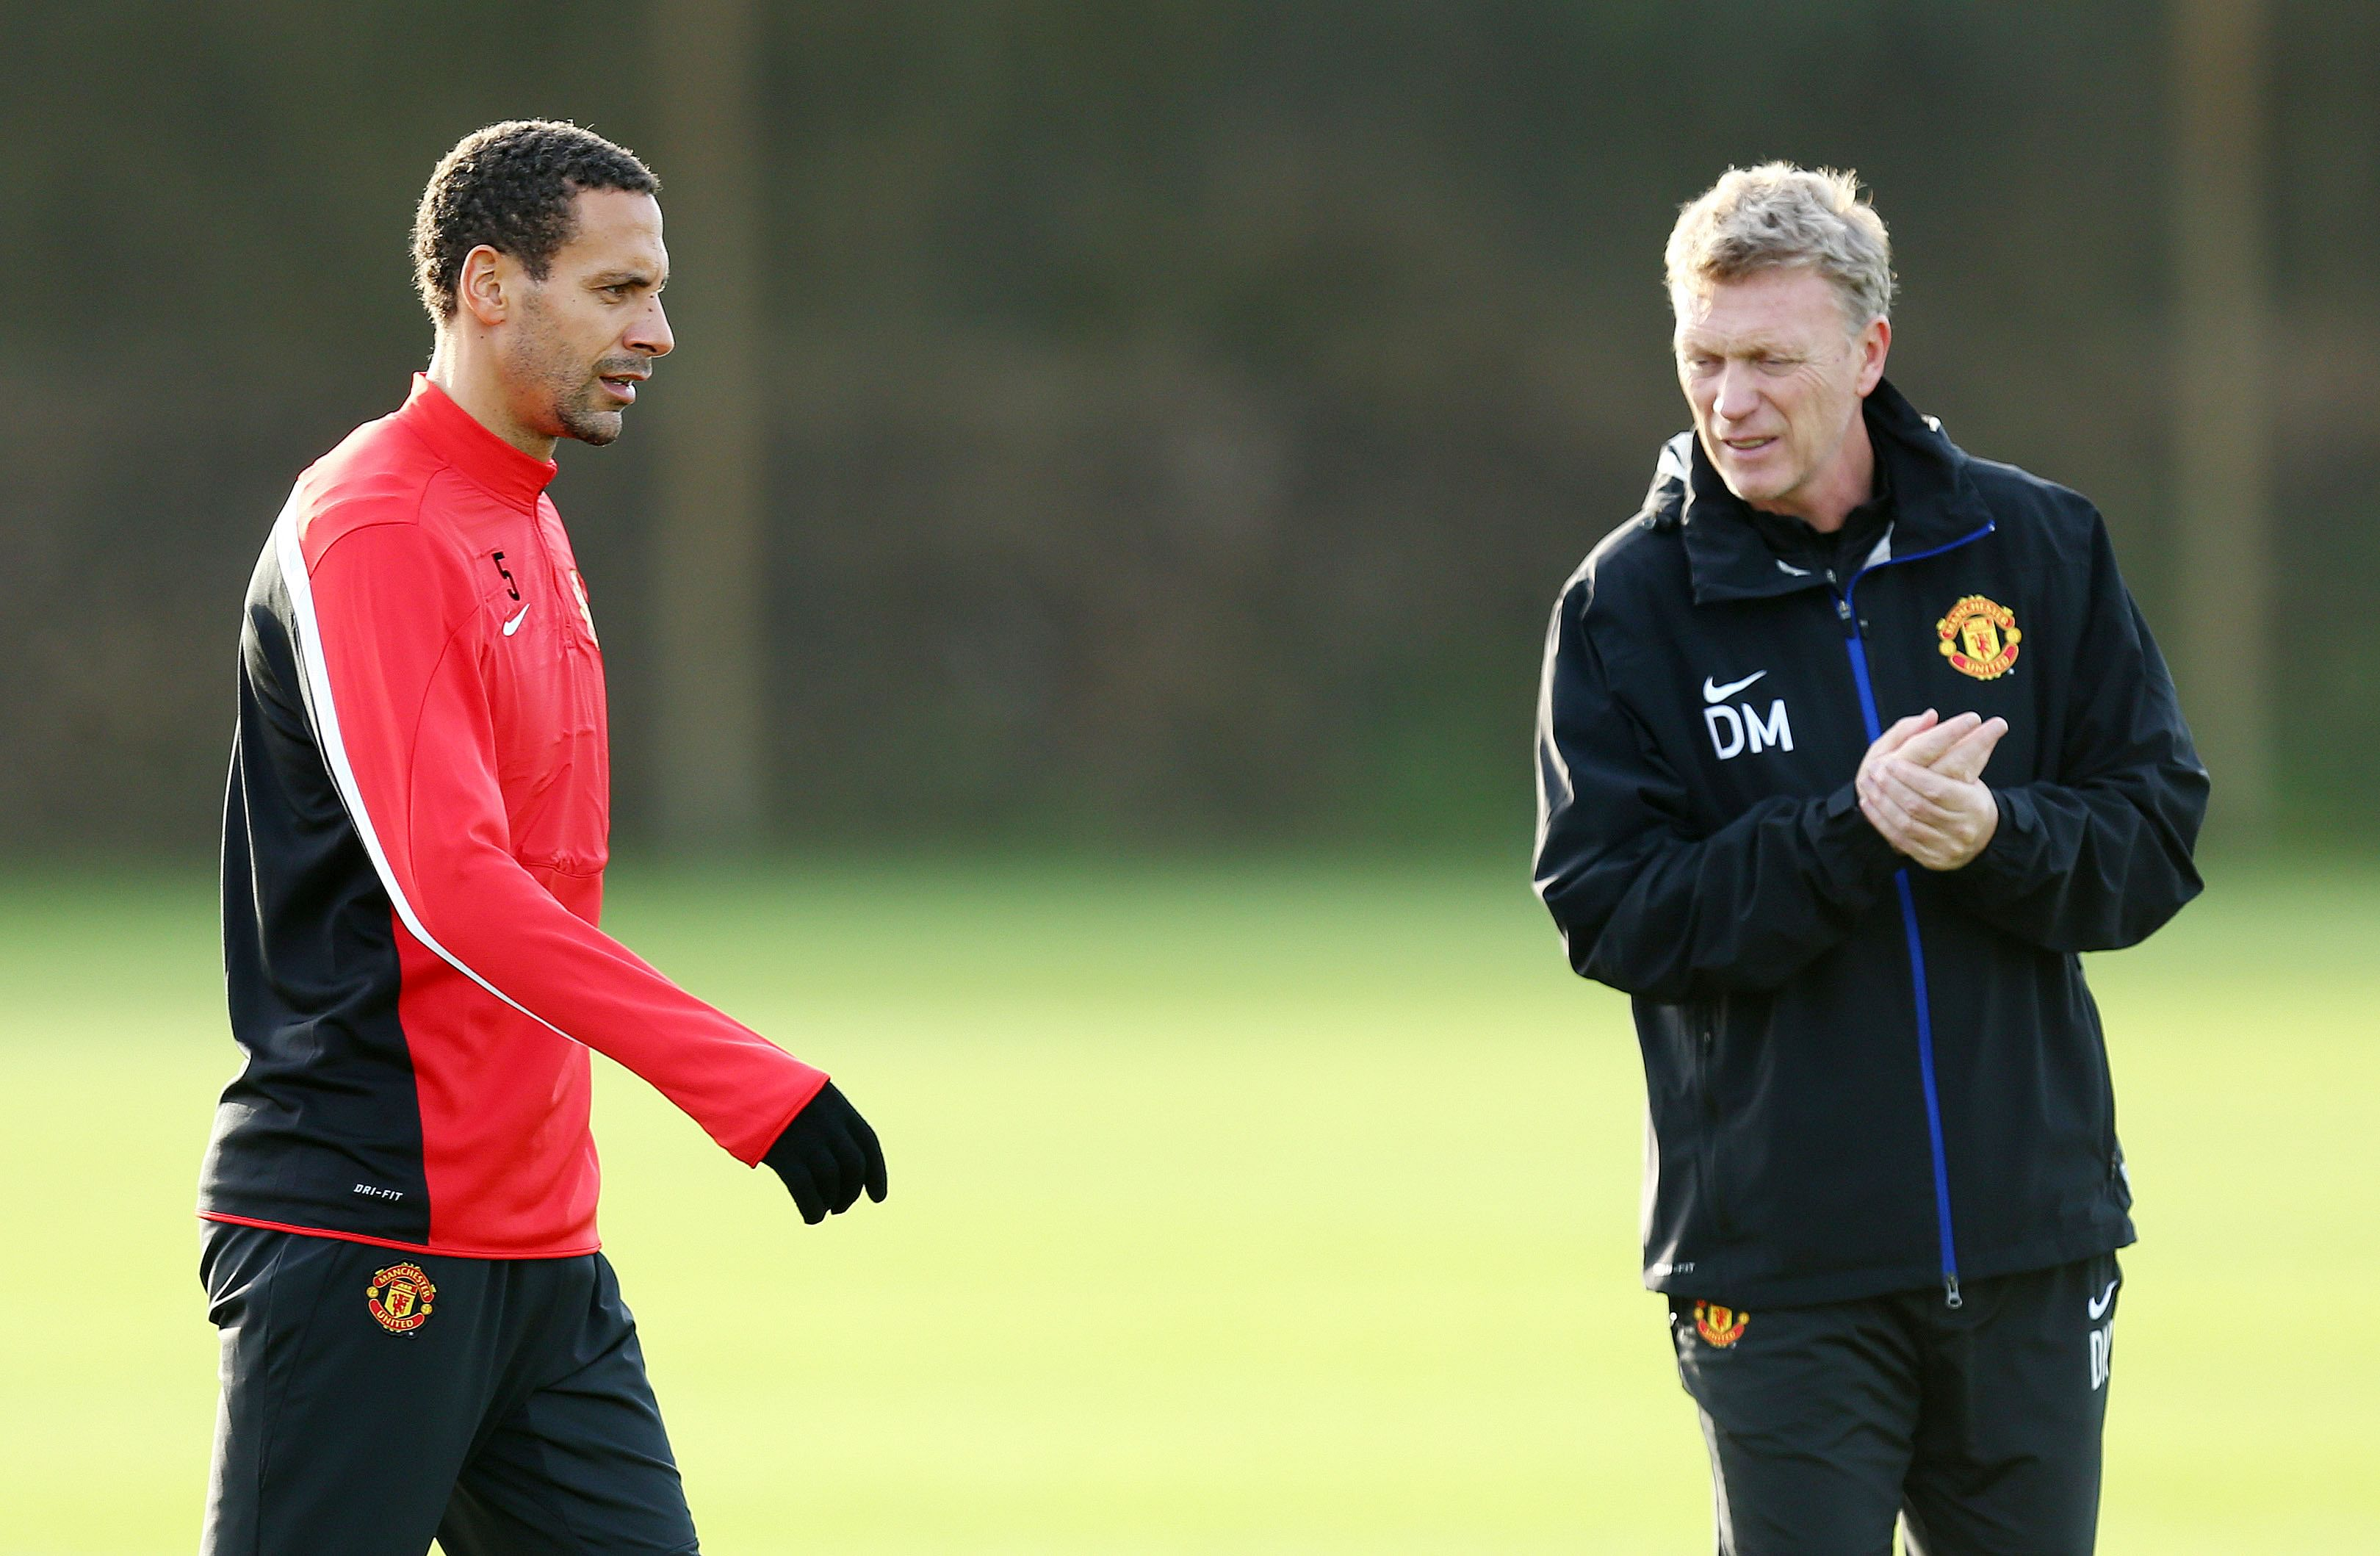 Rio Ferdinand: Manchester United will finish top four and qualify for the Champions League